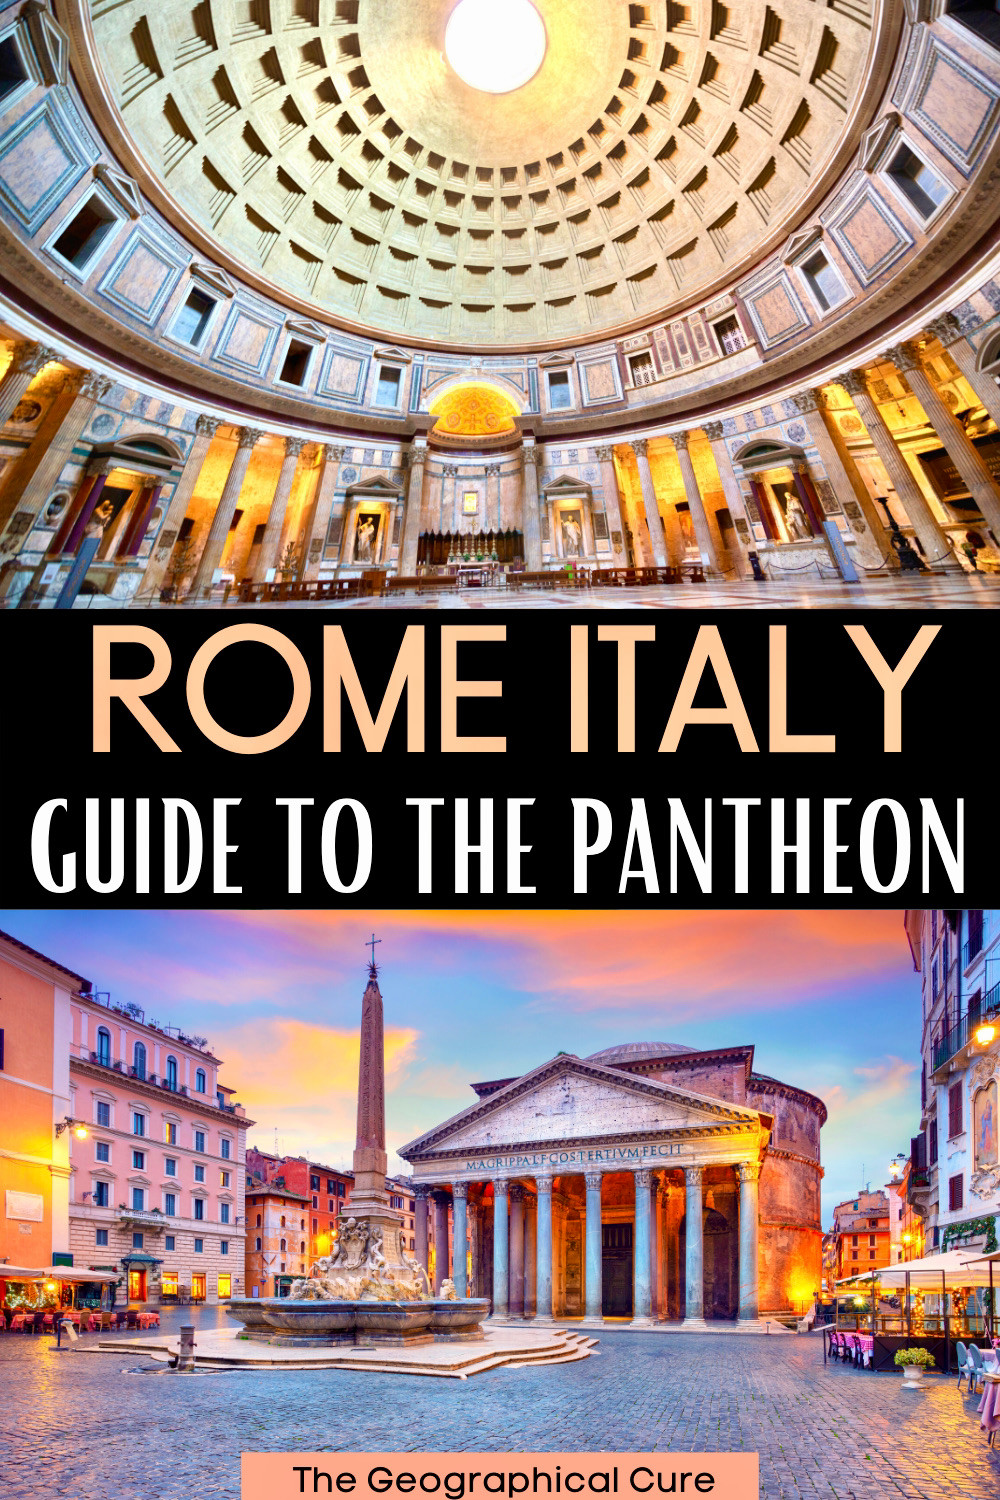 guide to the Pantheon, Rome's most beautiful monument